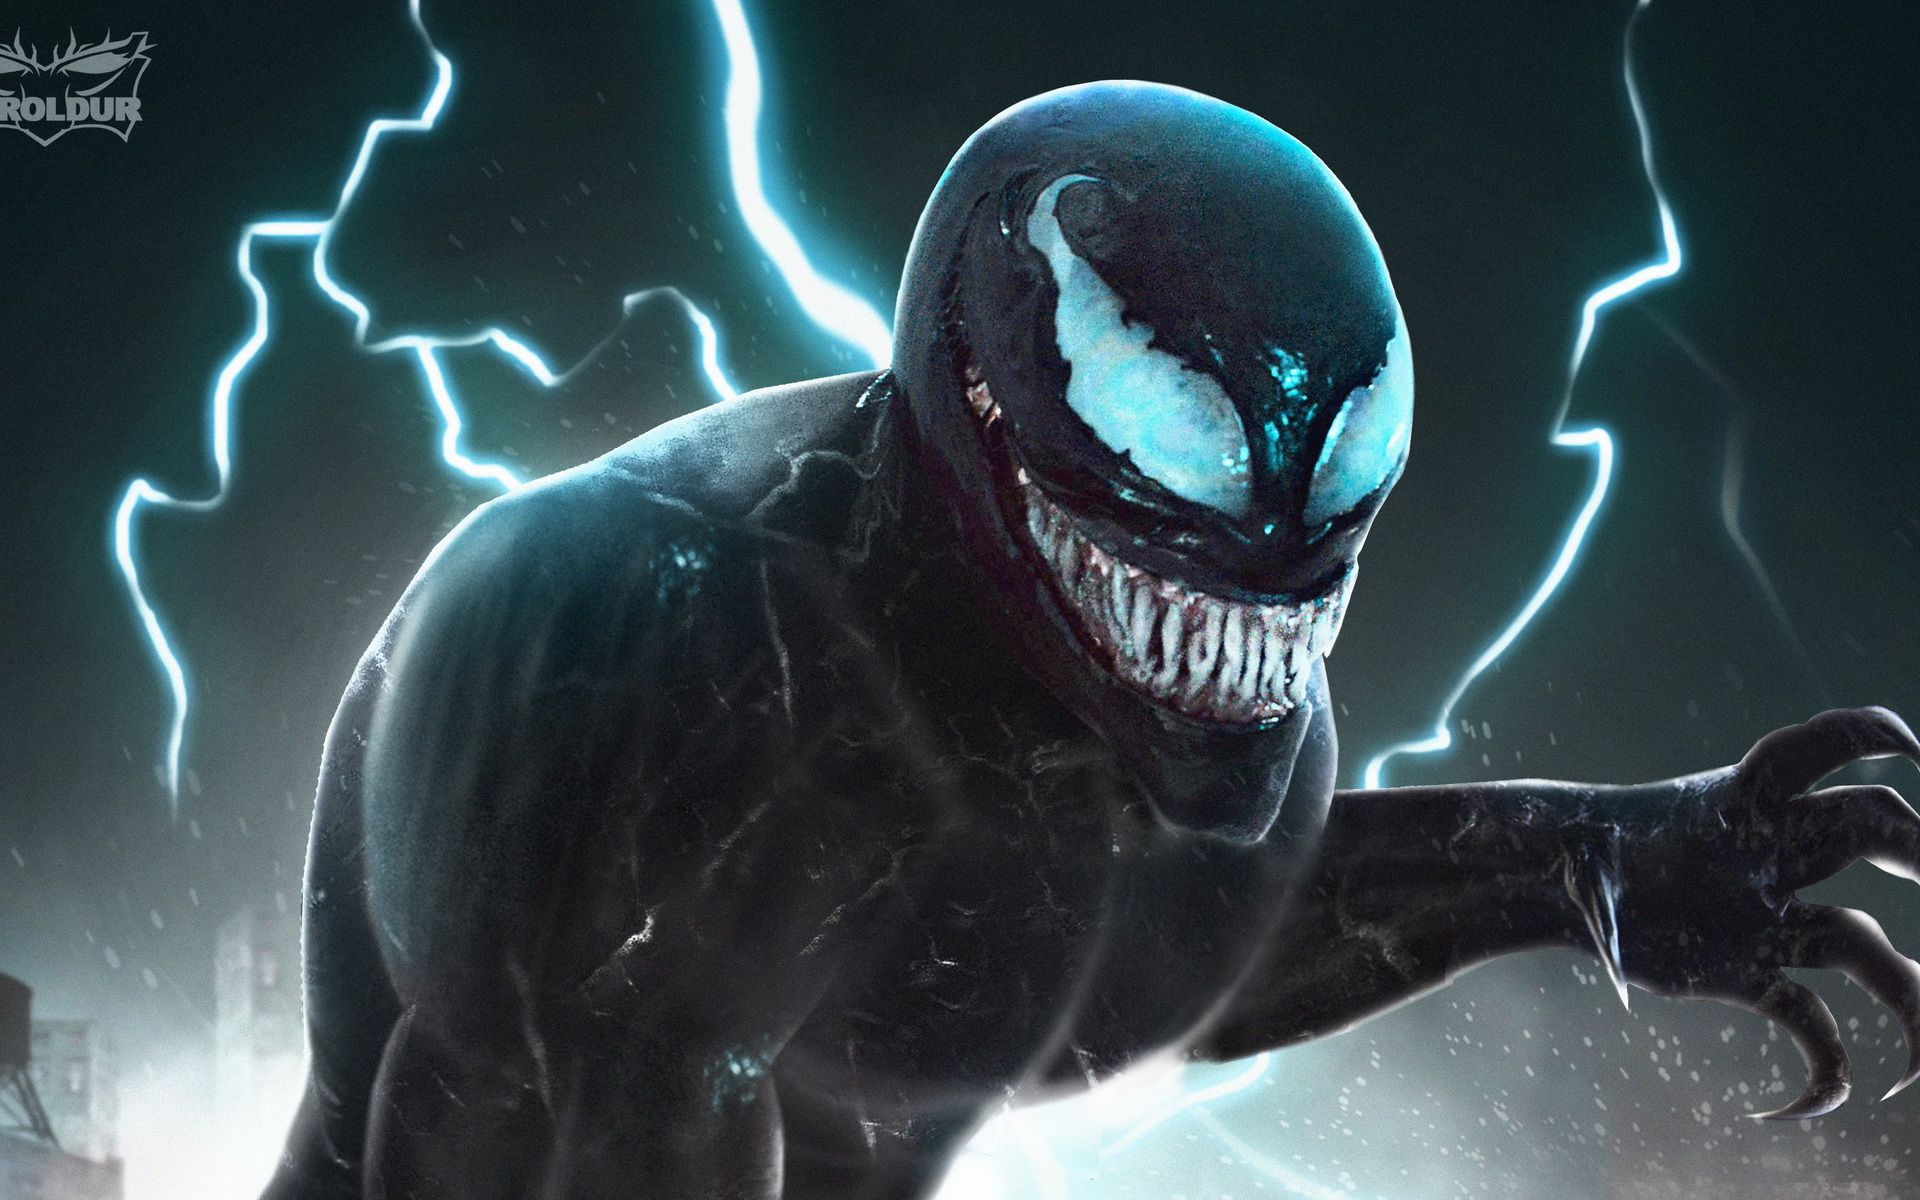 Venom 2018 Wallpapers Top Free Venom 2018 Backgrounds Wallpaperaccess